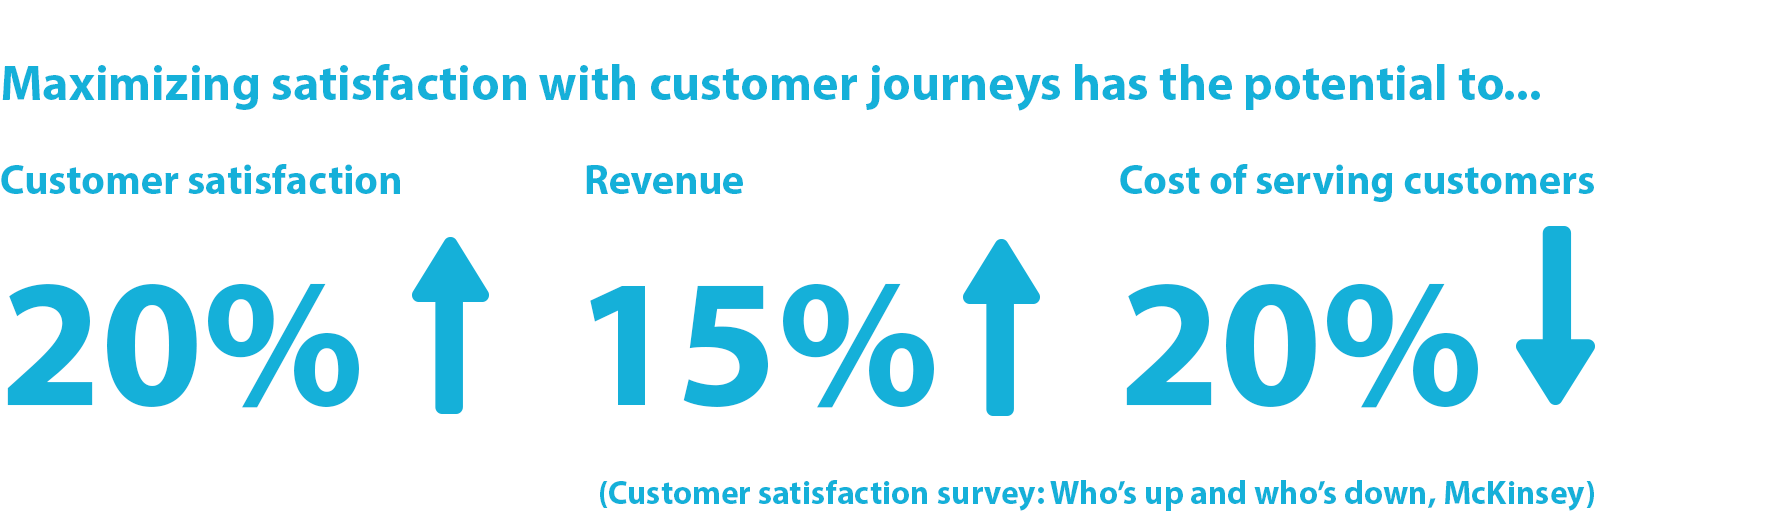 Statistic: Maximizing satisfaction with customer journeys has the potential not only to increase customer satisfaction by 20% but also to lift revenue by up to 15% while lowering the cost of serving customers by as much as 20%. (Customer satisfaction survey: Who's up and who's down, McKinsey)